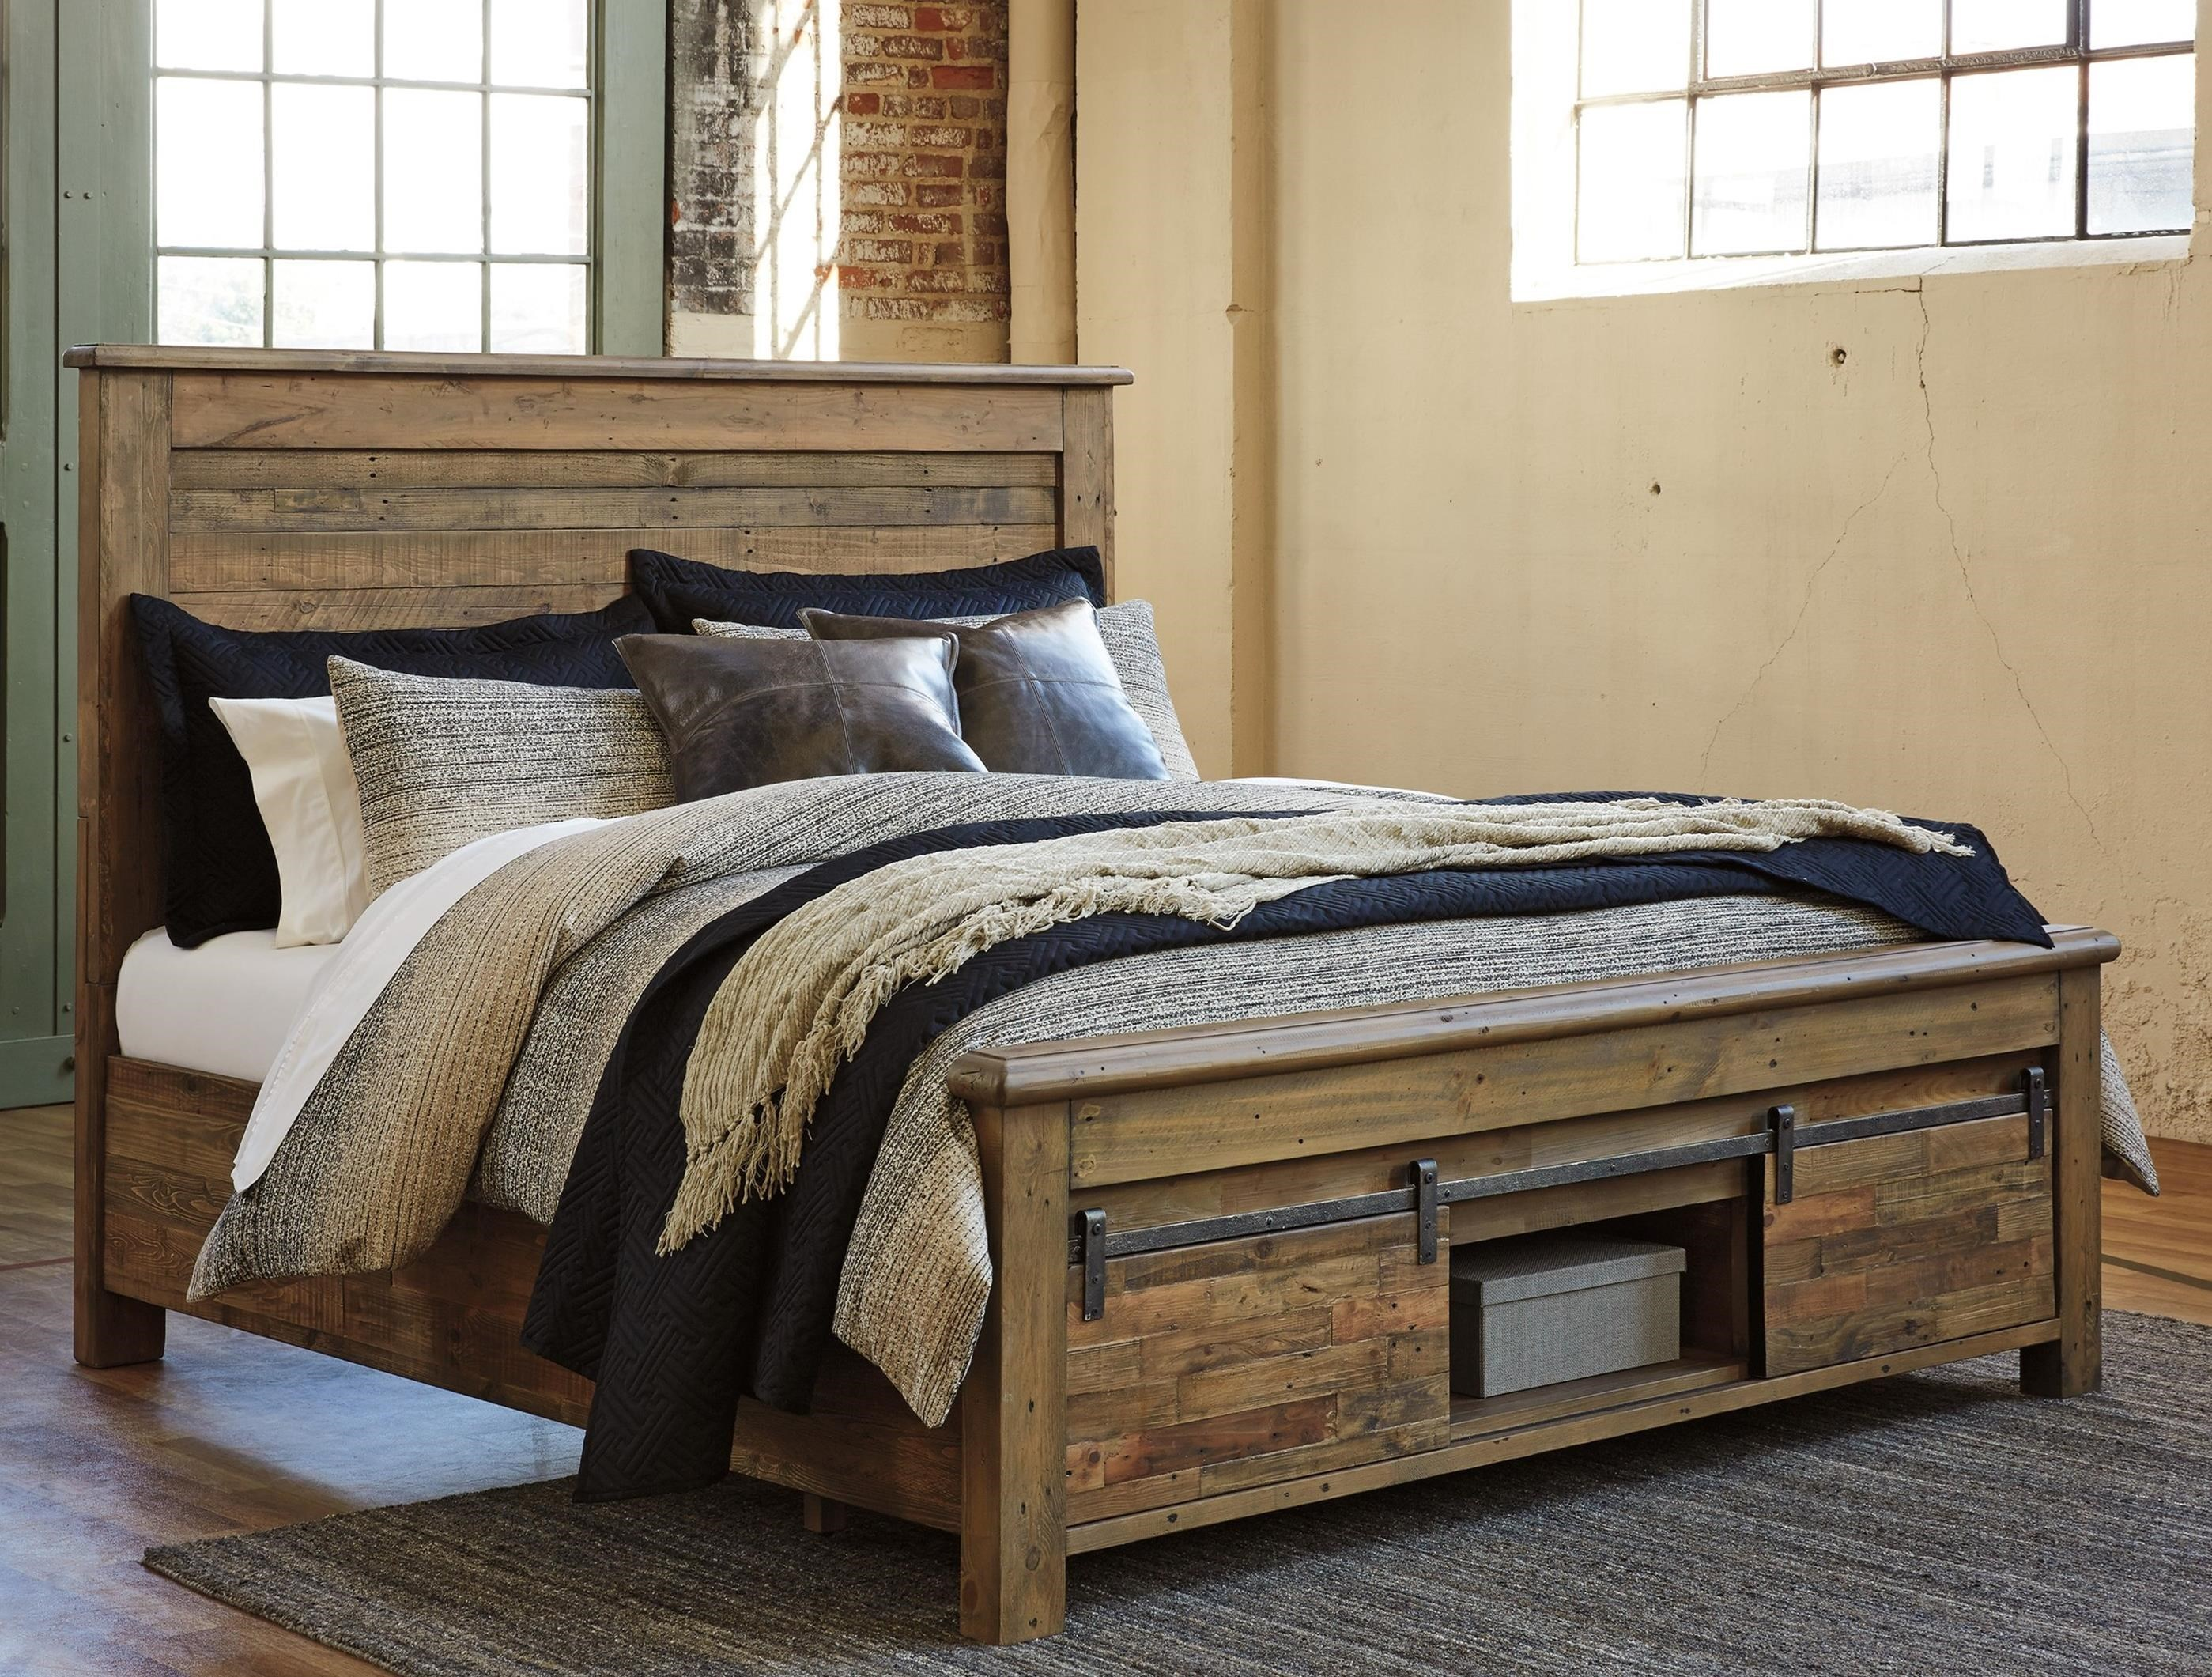 Picture of: Signature Design By Ashley Sommerford California King Panel Storage Bed With Barn Doors Royal Furniture Platform Beds Low Profile Beds